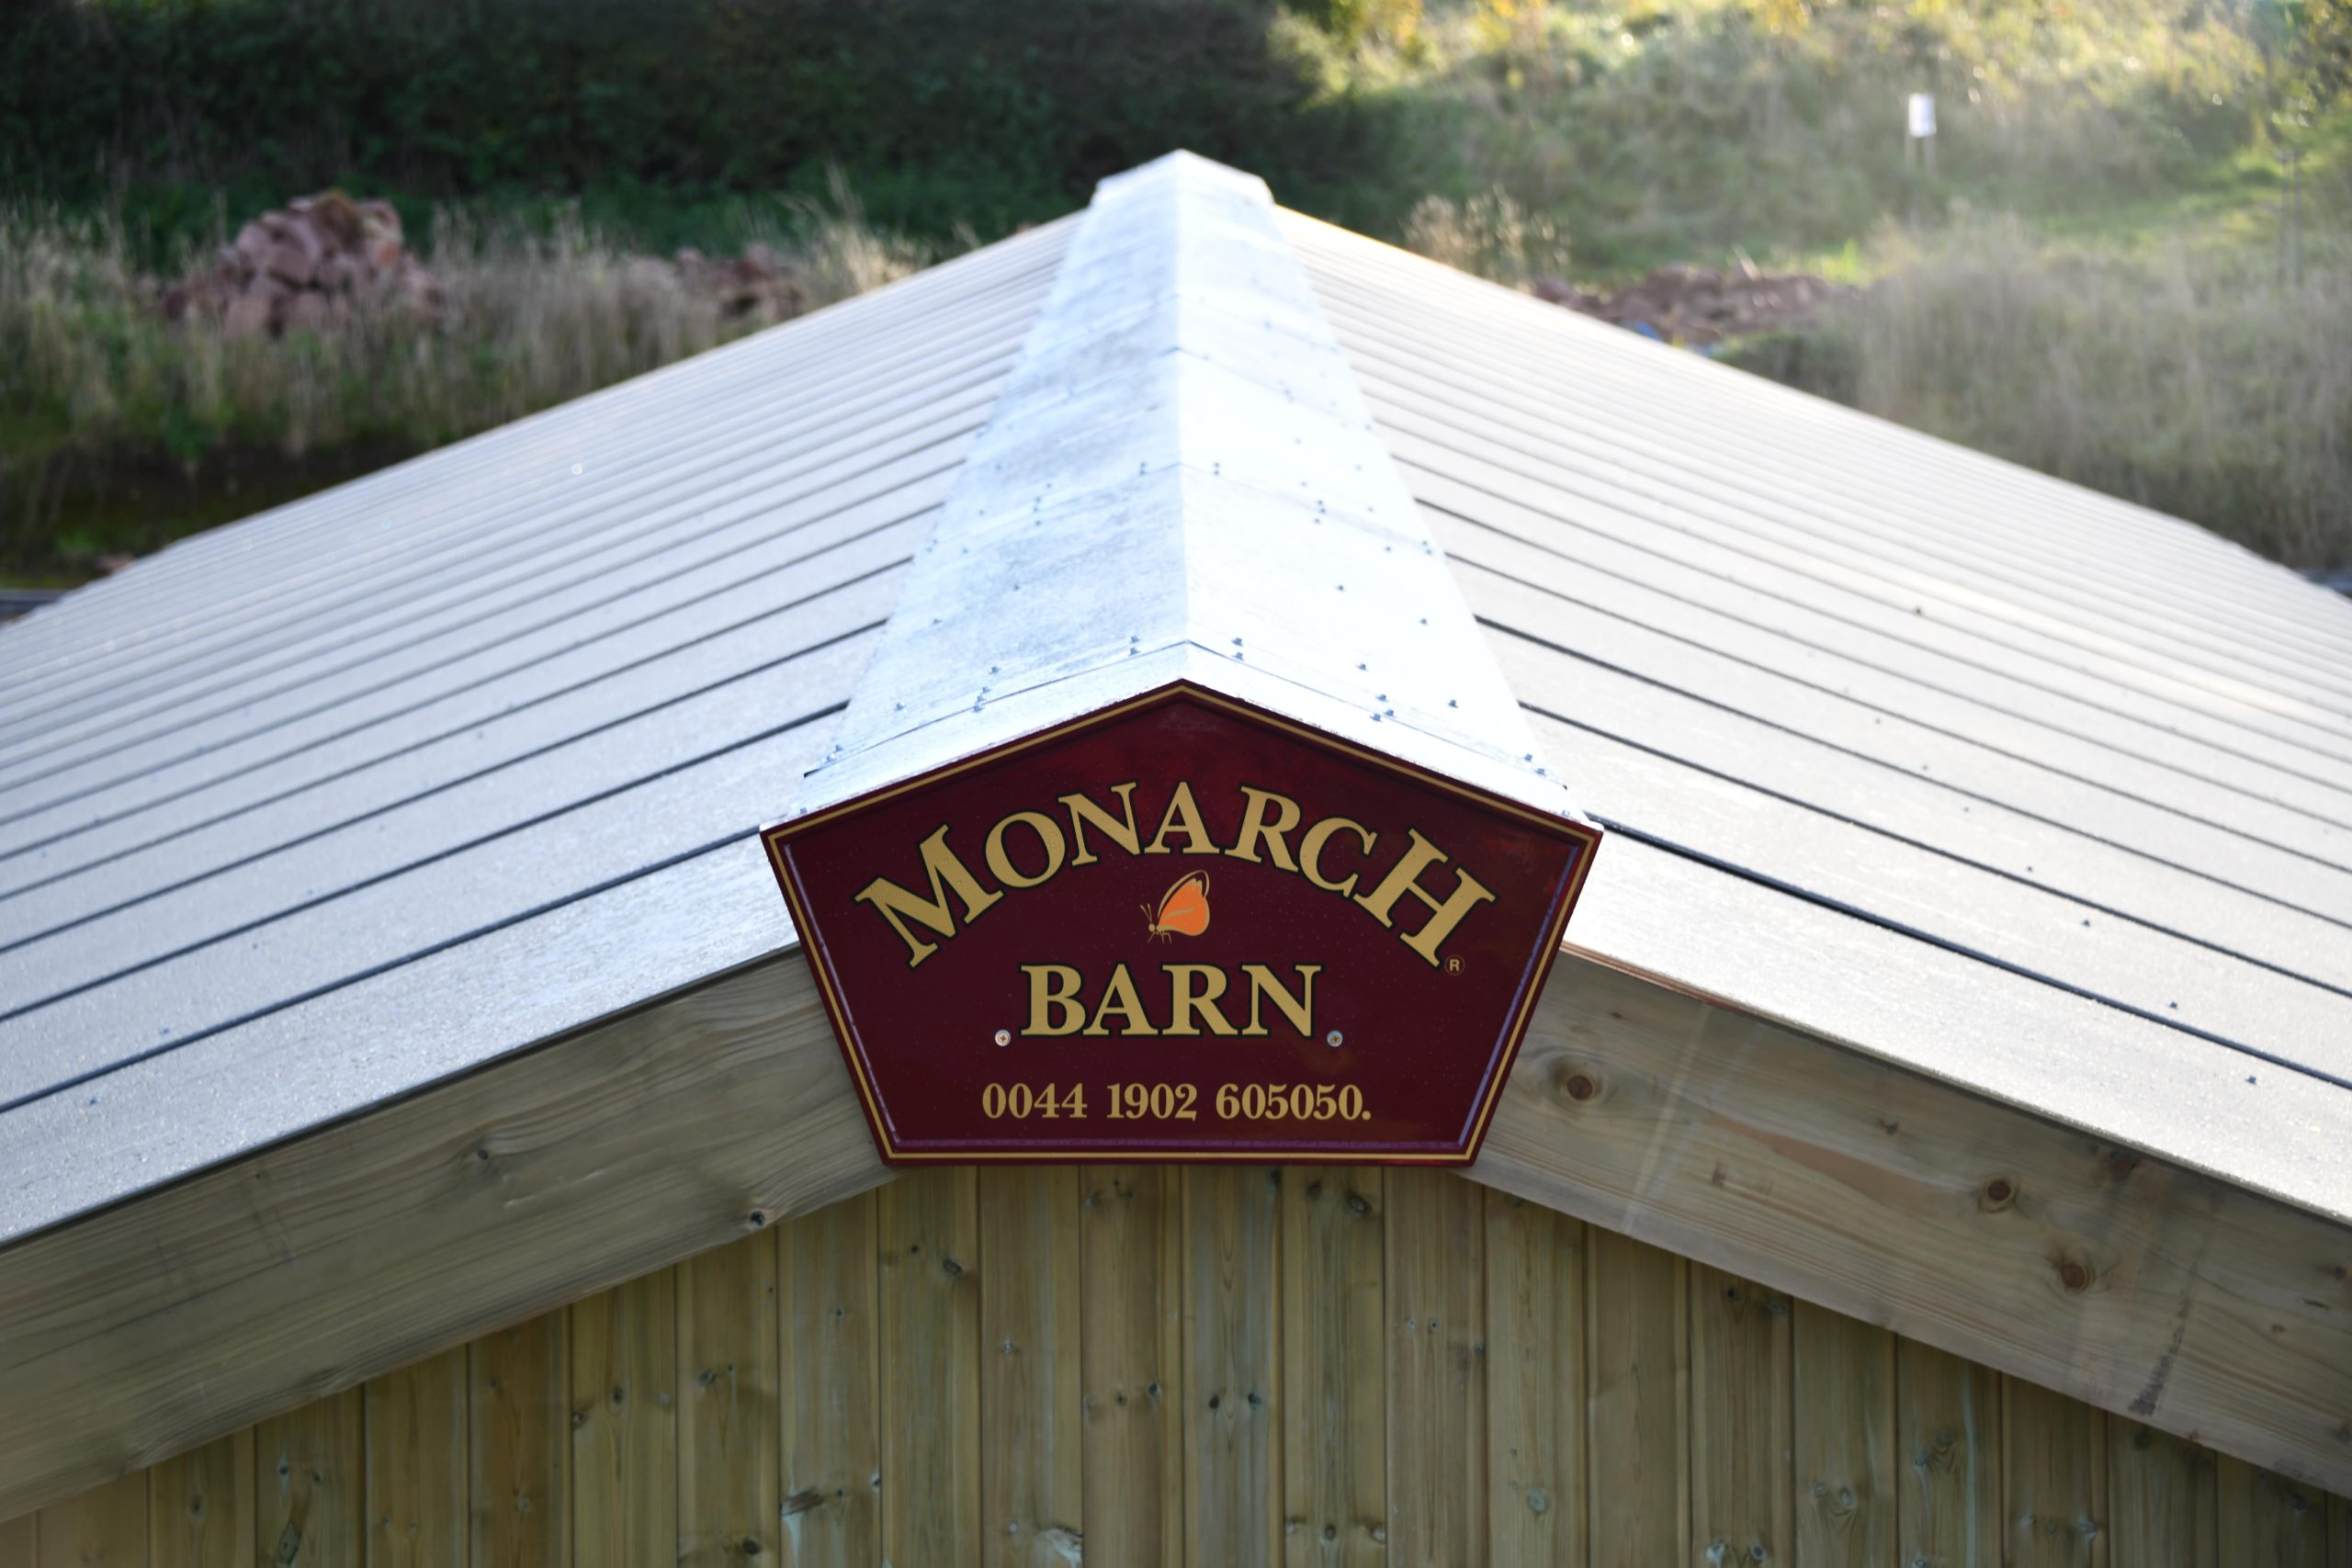 Monarch barn with polycarbonate roof by Monarch Equestrian